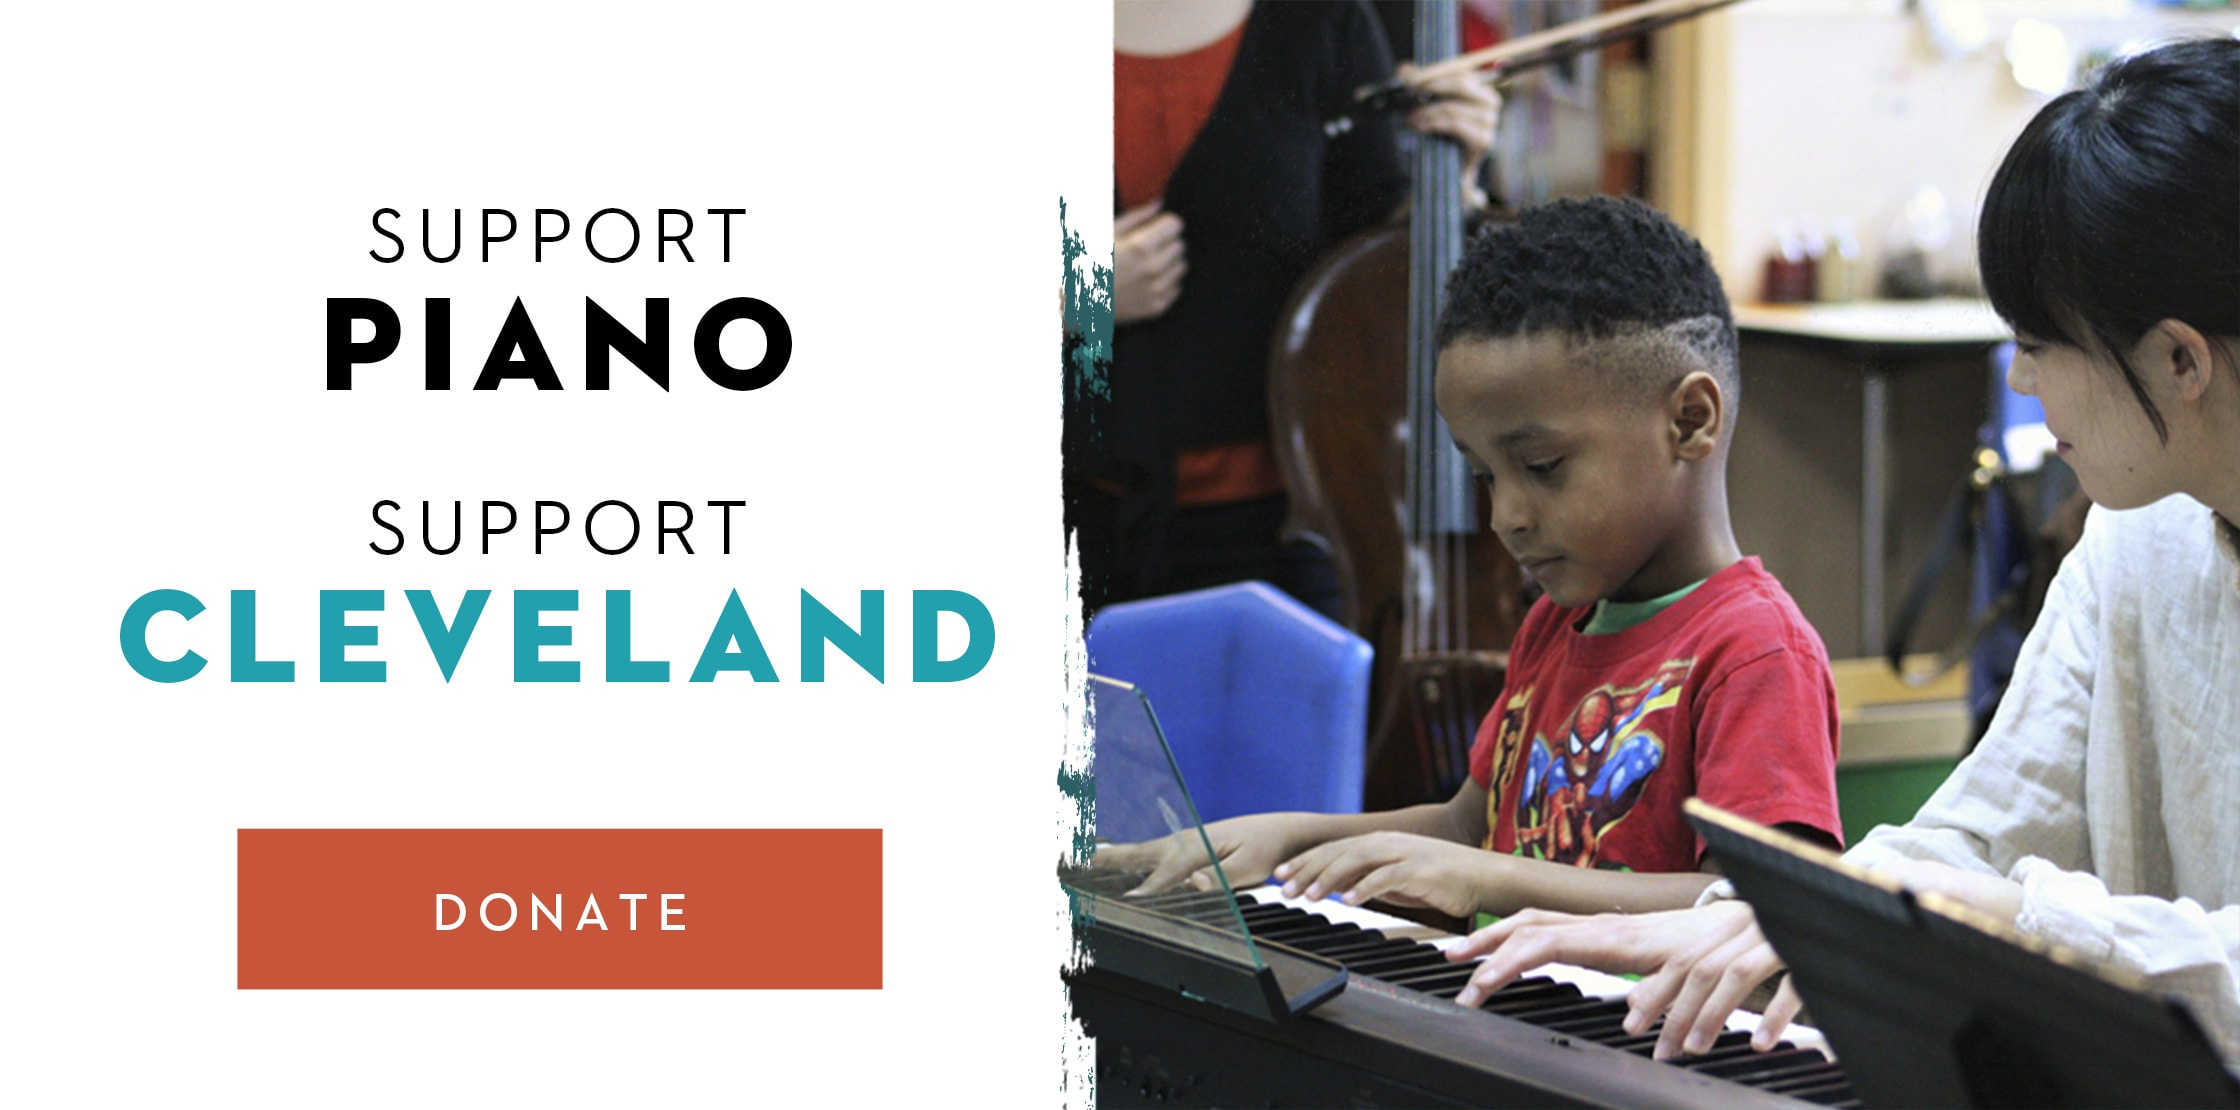 support piano support cleveland through donations